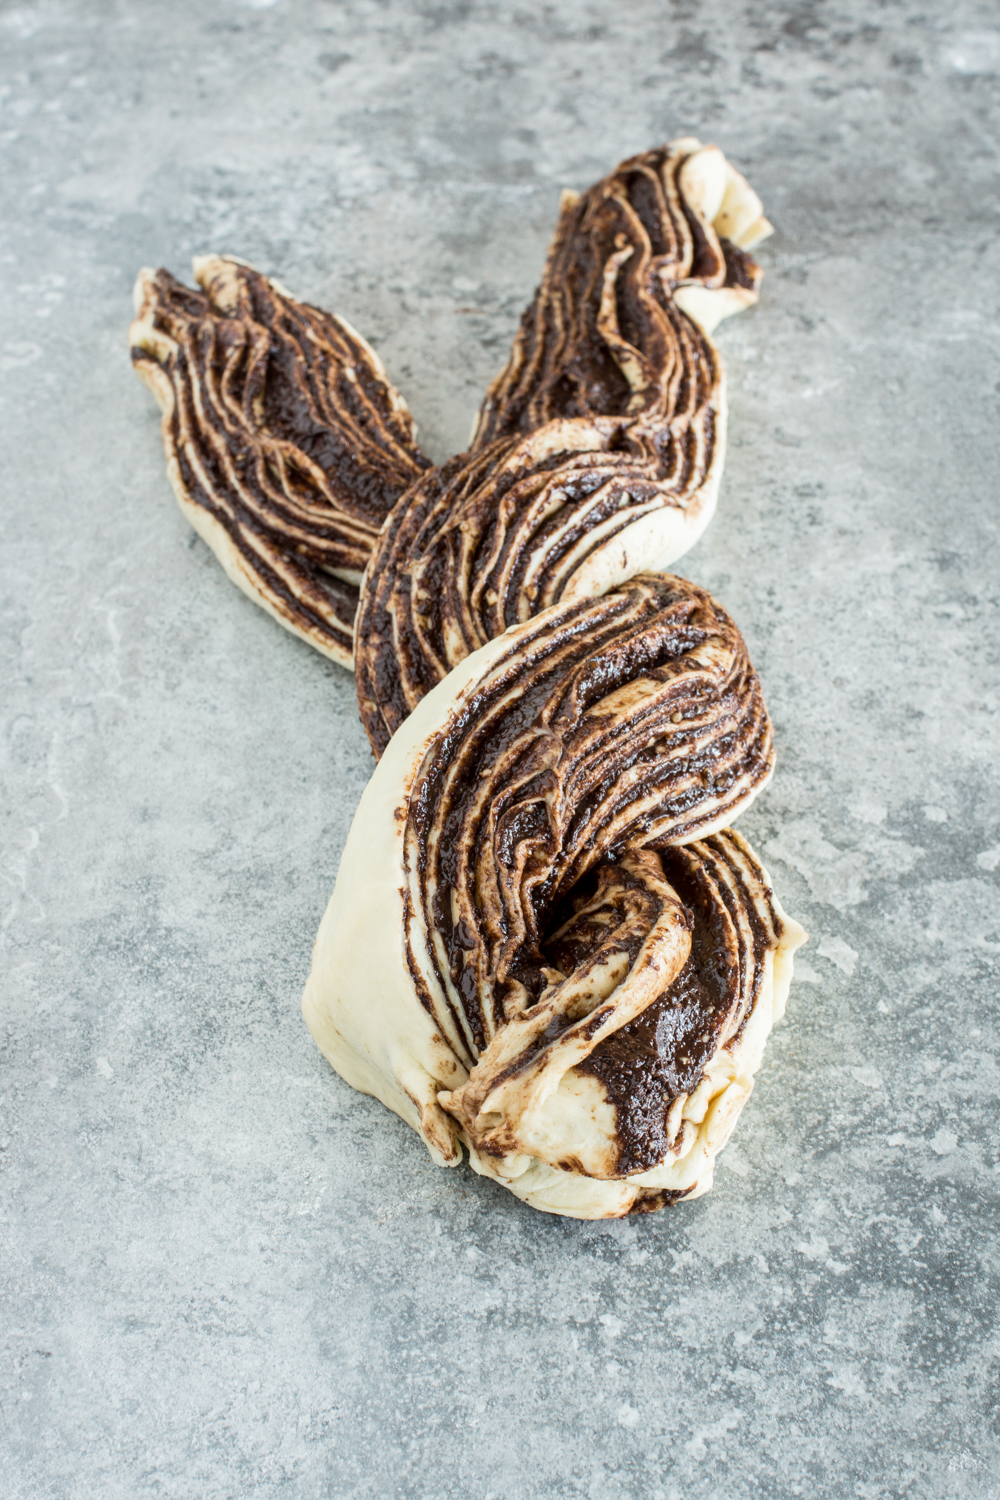 Two-string chocolate hazelnut striezel shape - simple recipe and step-by-step instructions